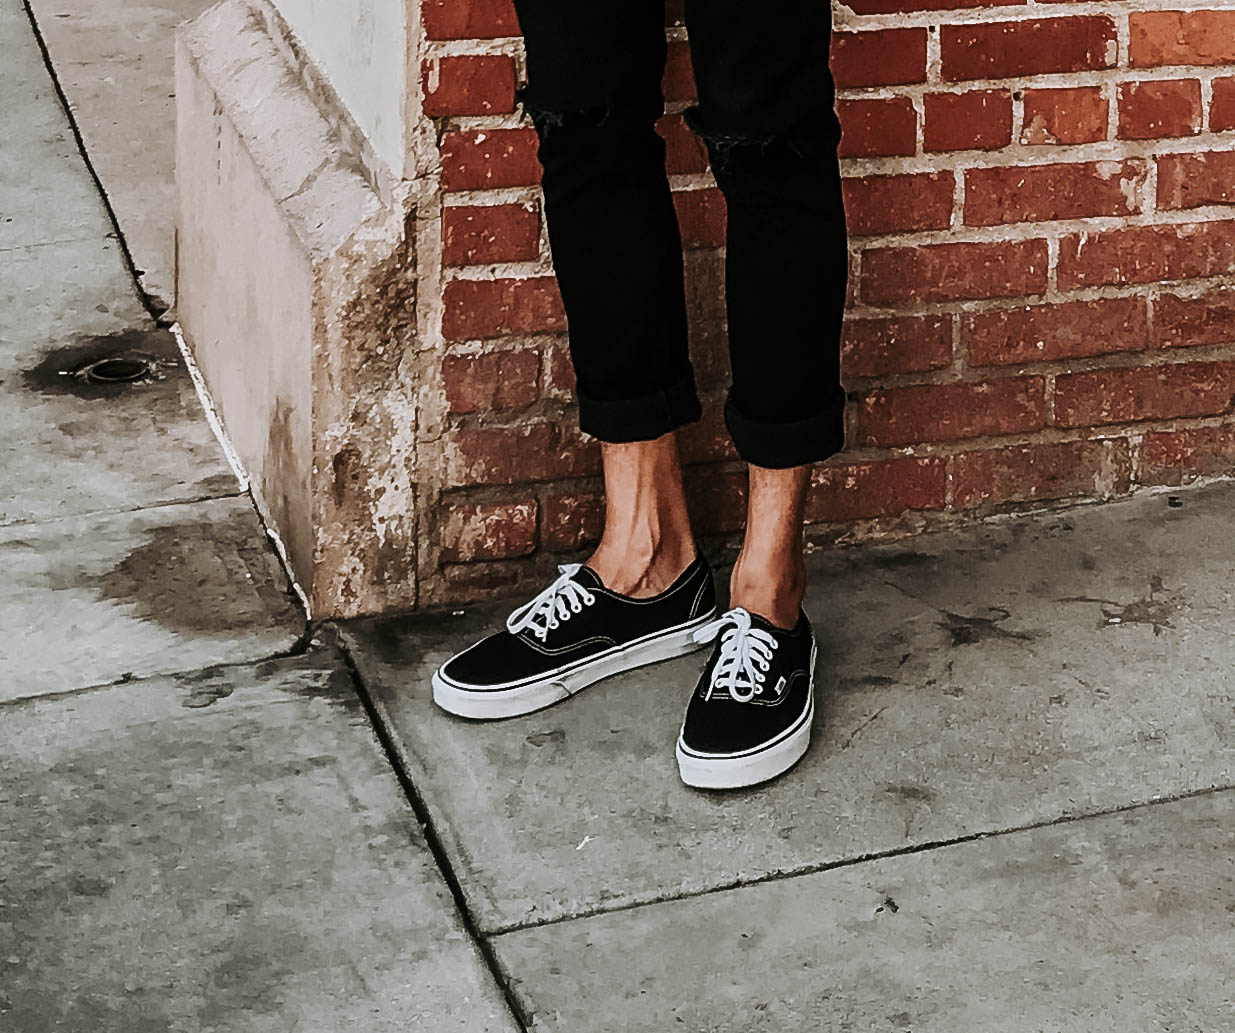 style guide to vans, vans shoes, what vans to buy, best van colors, my favorite vans